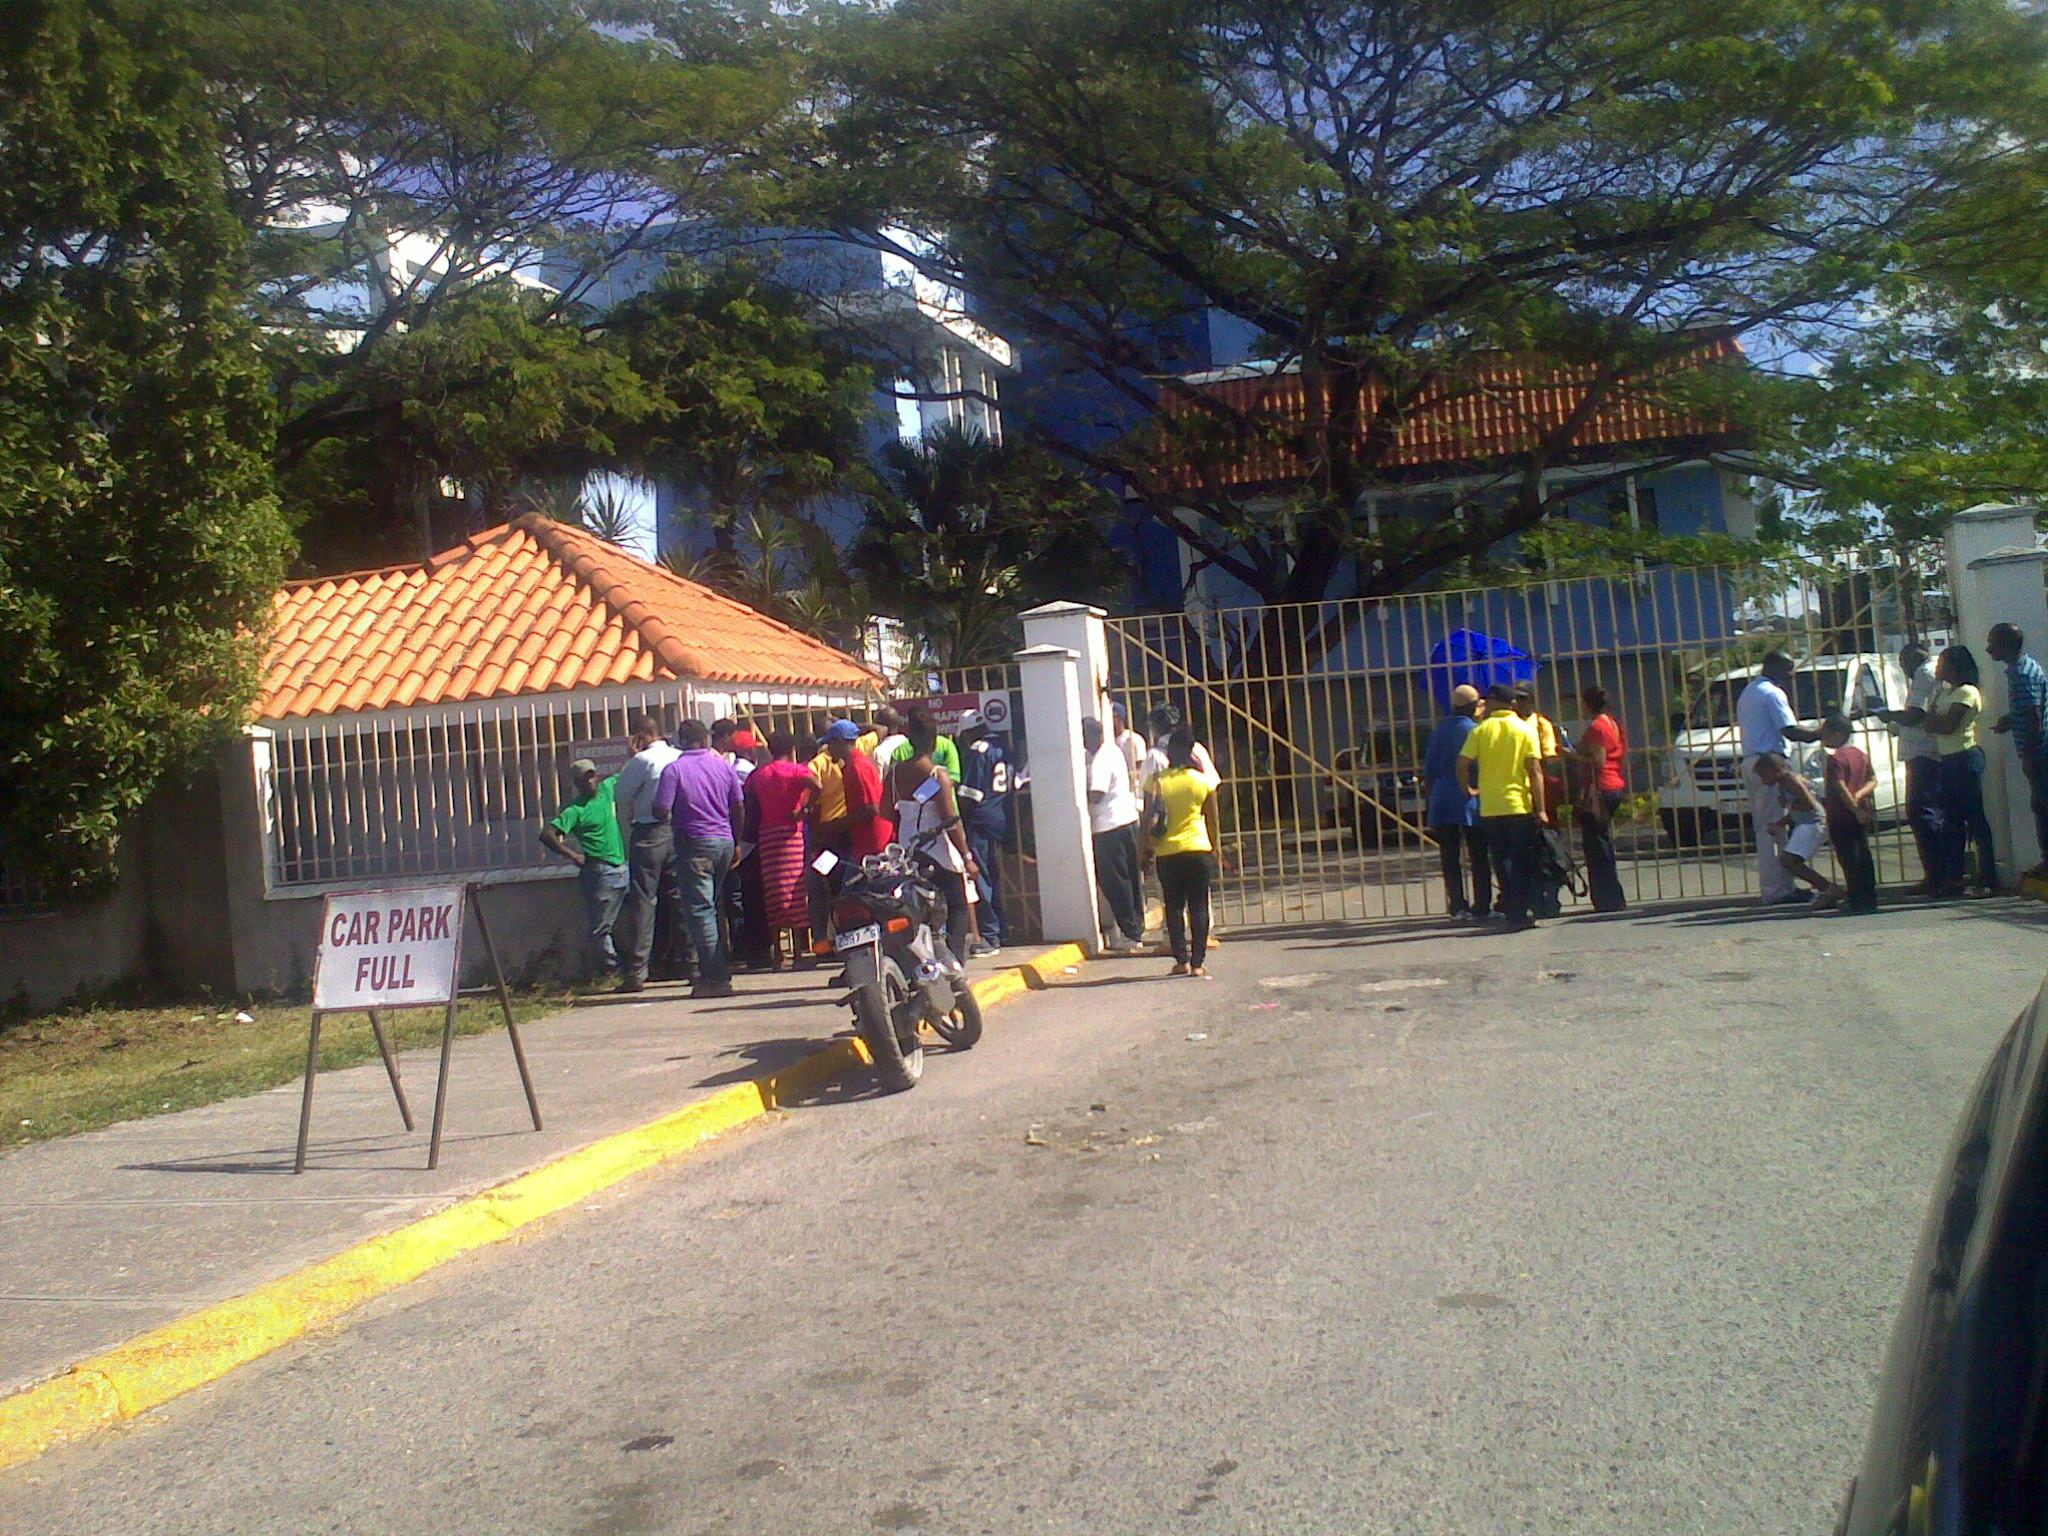 Traffic Ticket Amnesty Deadline in Mobay 2012